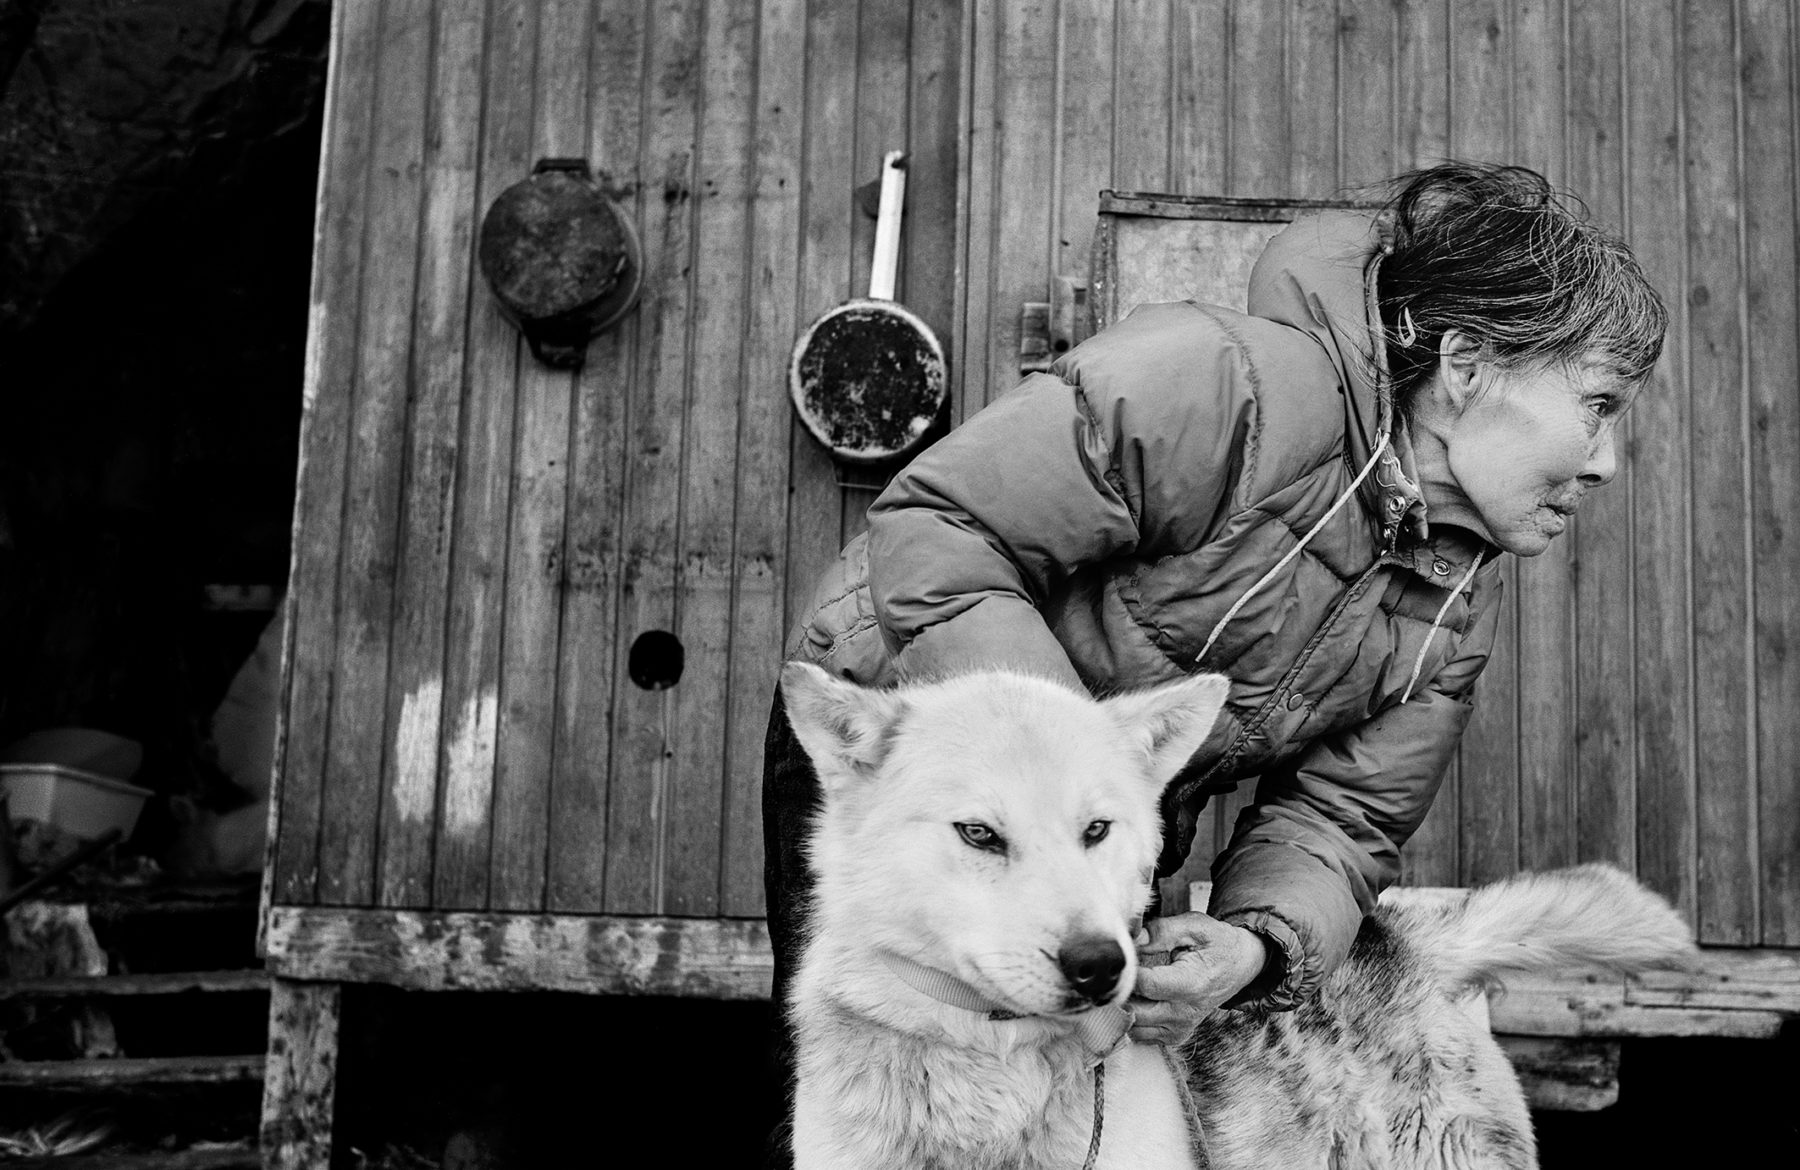 Ragnar Axelsson Faces of the north 0014